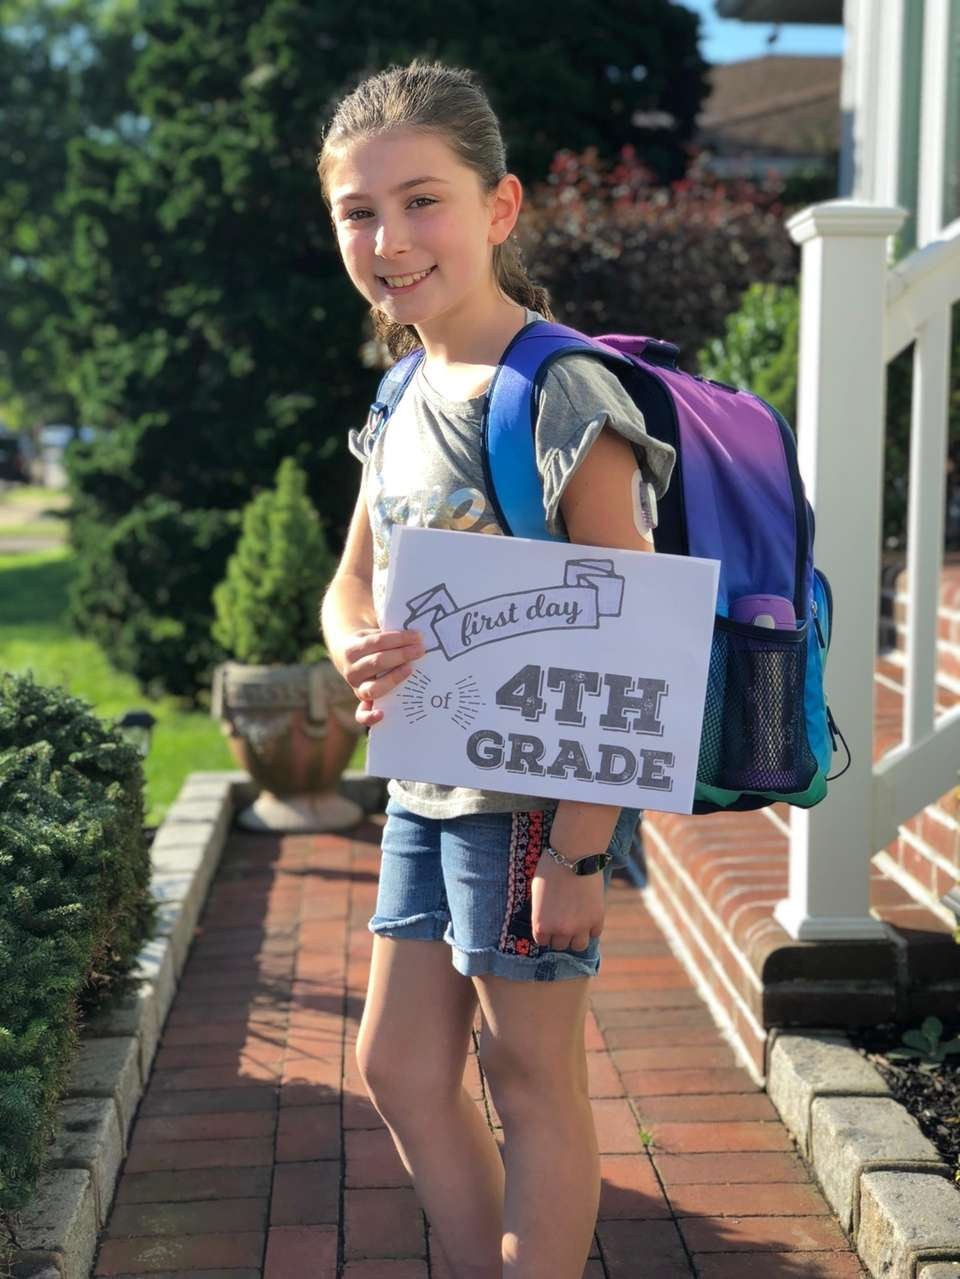 Olivia ready her first day of 4th grade